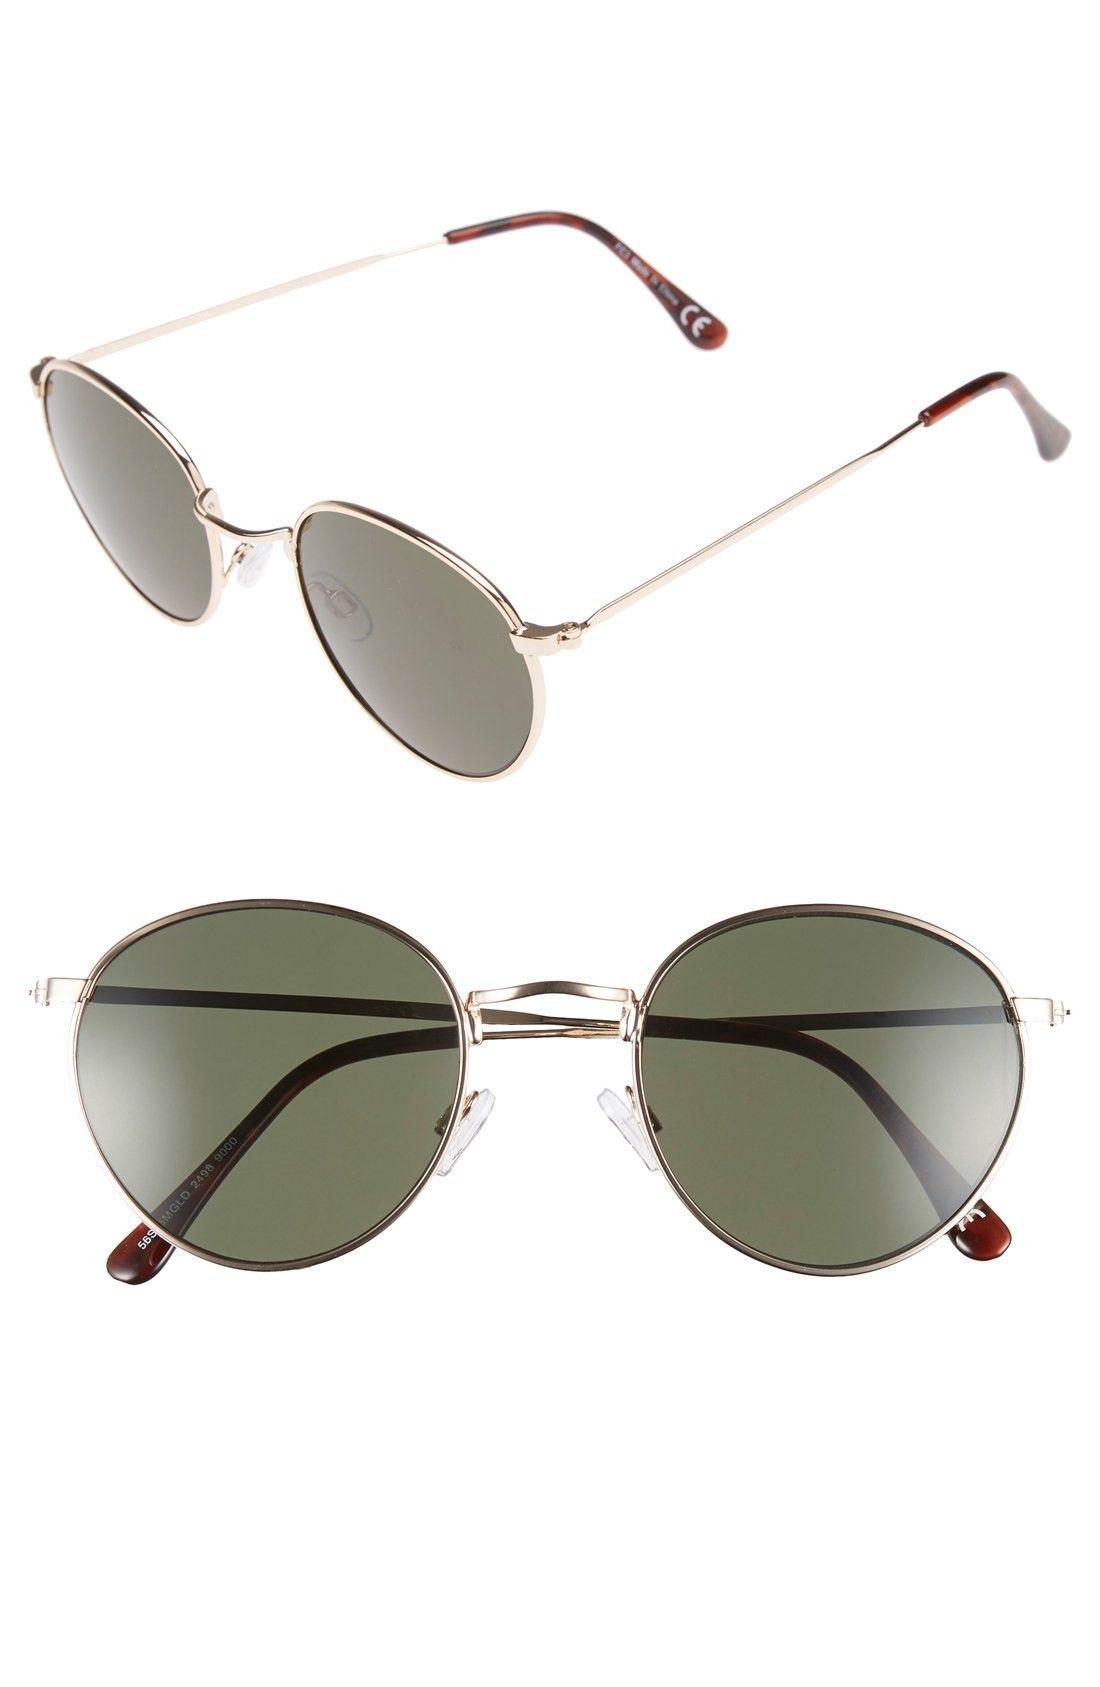 Topman 50mm Round Sunglasses | Fashiondoxy.com Description - Free shipping and returns on Topman 50mm Round Sunglasses at Fashiondoxy.com. Round metal frames create dashing retro style on lightweight, full-coverage sunglasses that go the distance as an everyday essential.